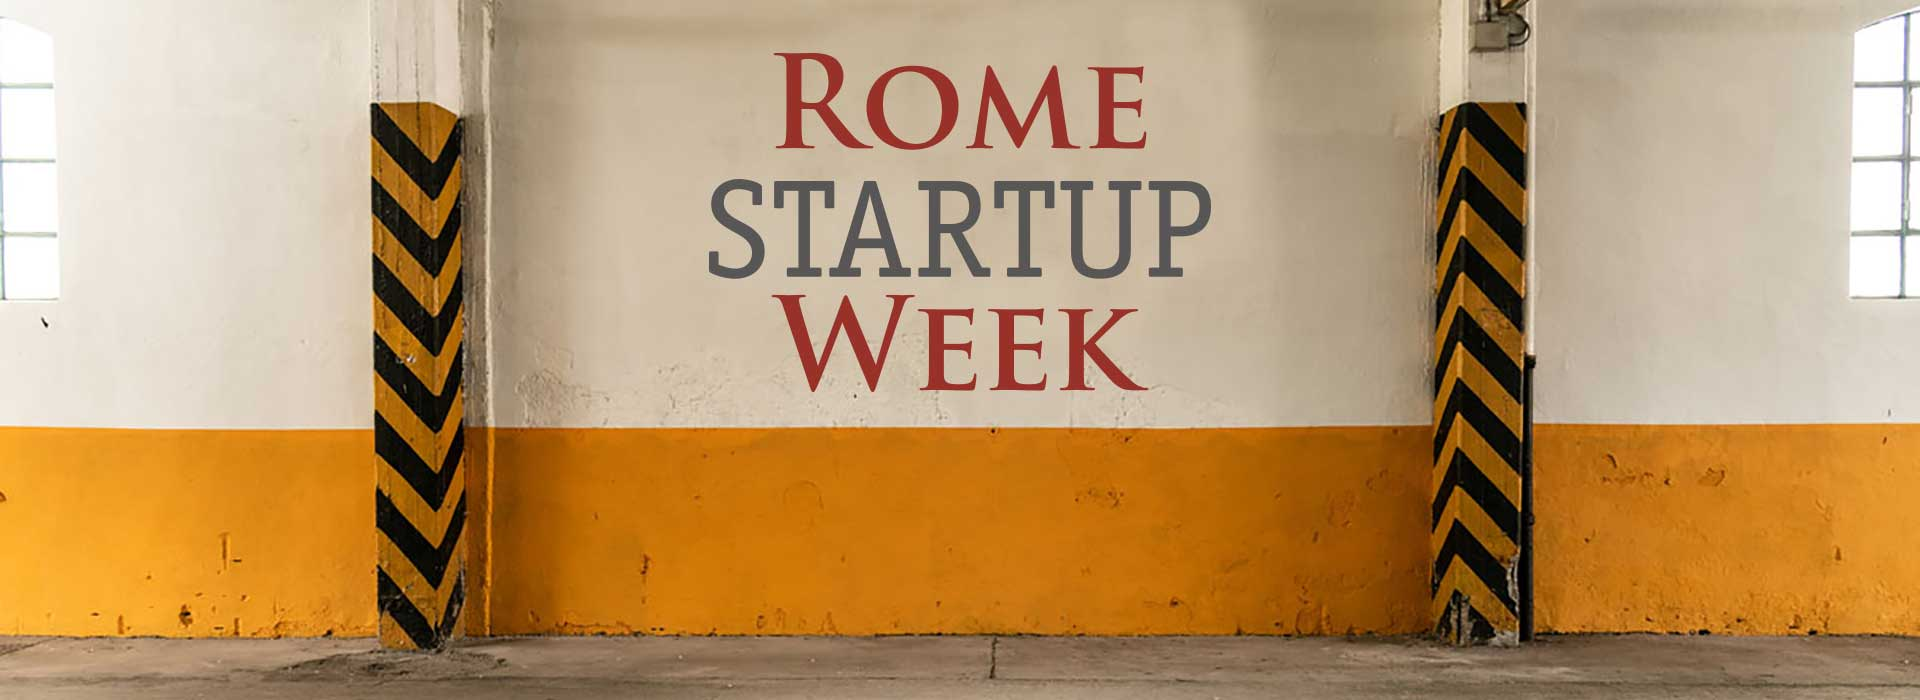 Rome Startup Week 2019, #rsw19